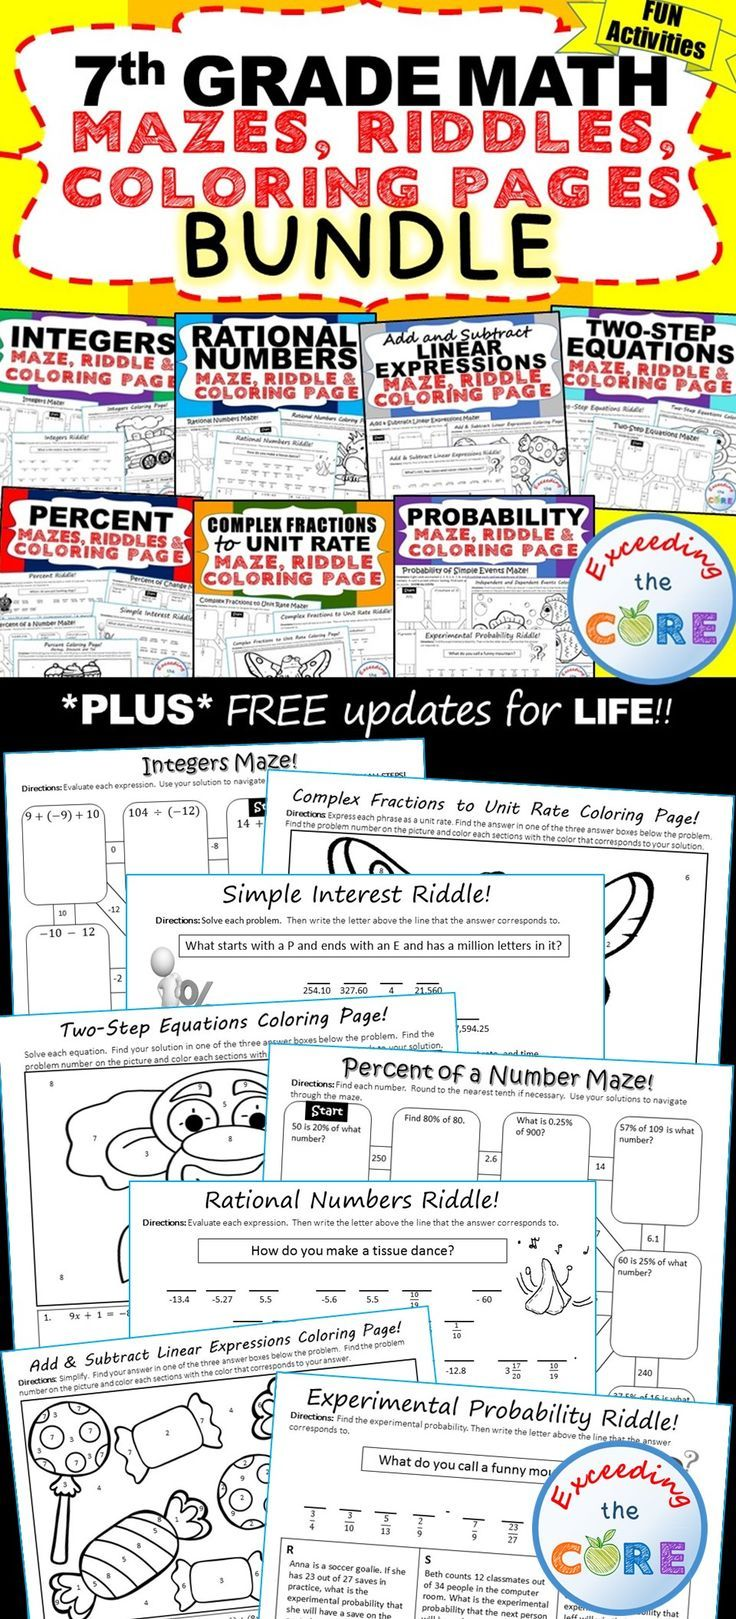 7th Grade Math Mazes Riddles Coloring Pages Fun Math